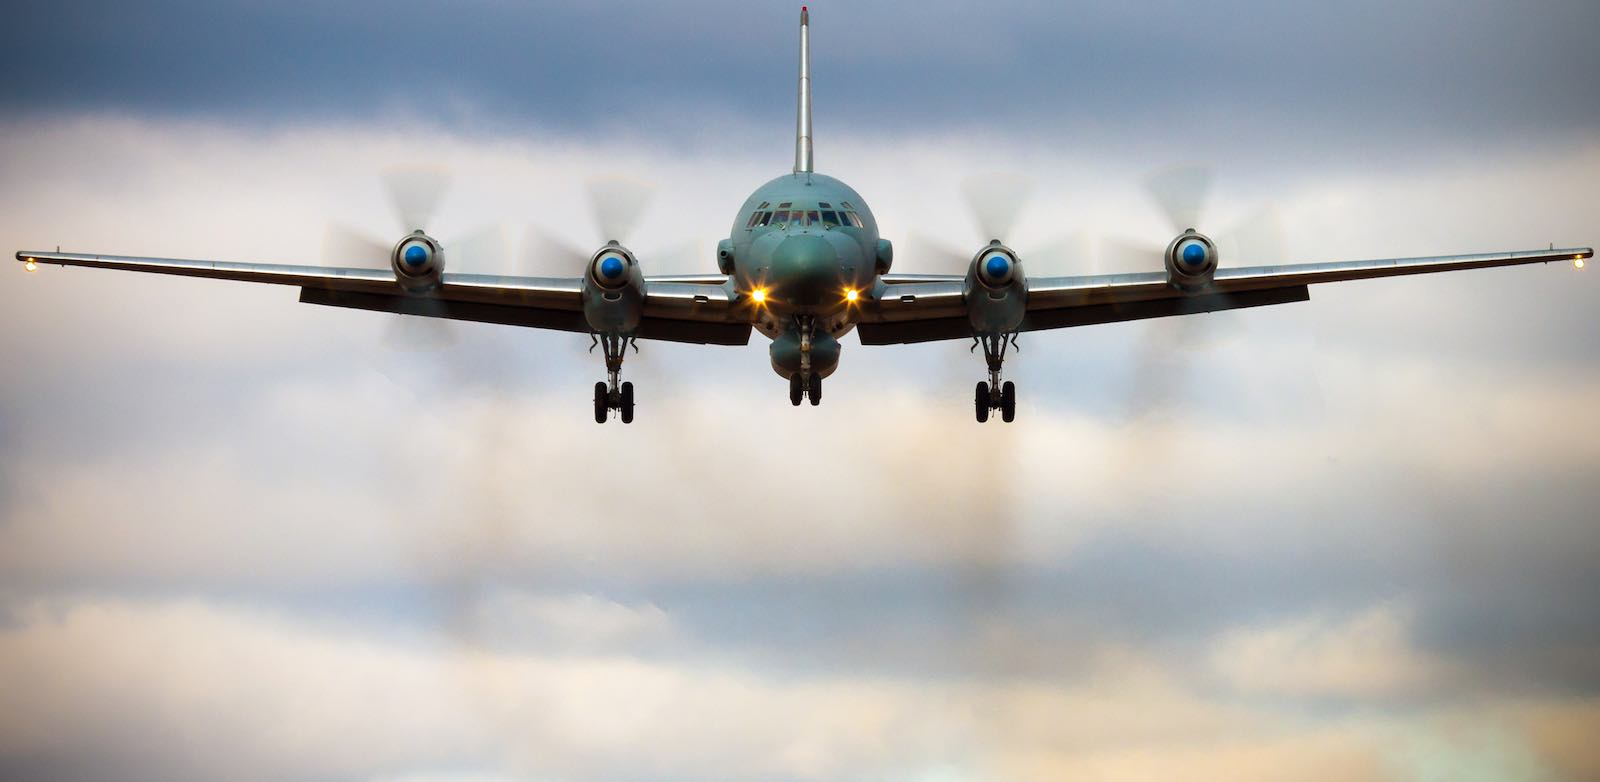 A Russian IL-20M, the type of aircraft destroyed in Syria (Photo: Alexander Kopitar via Getty)